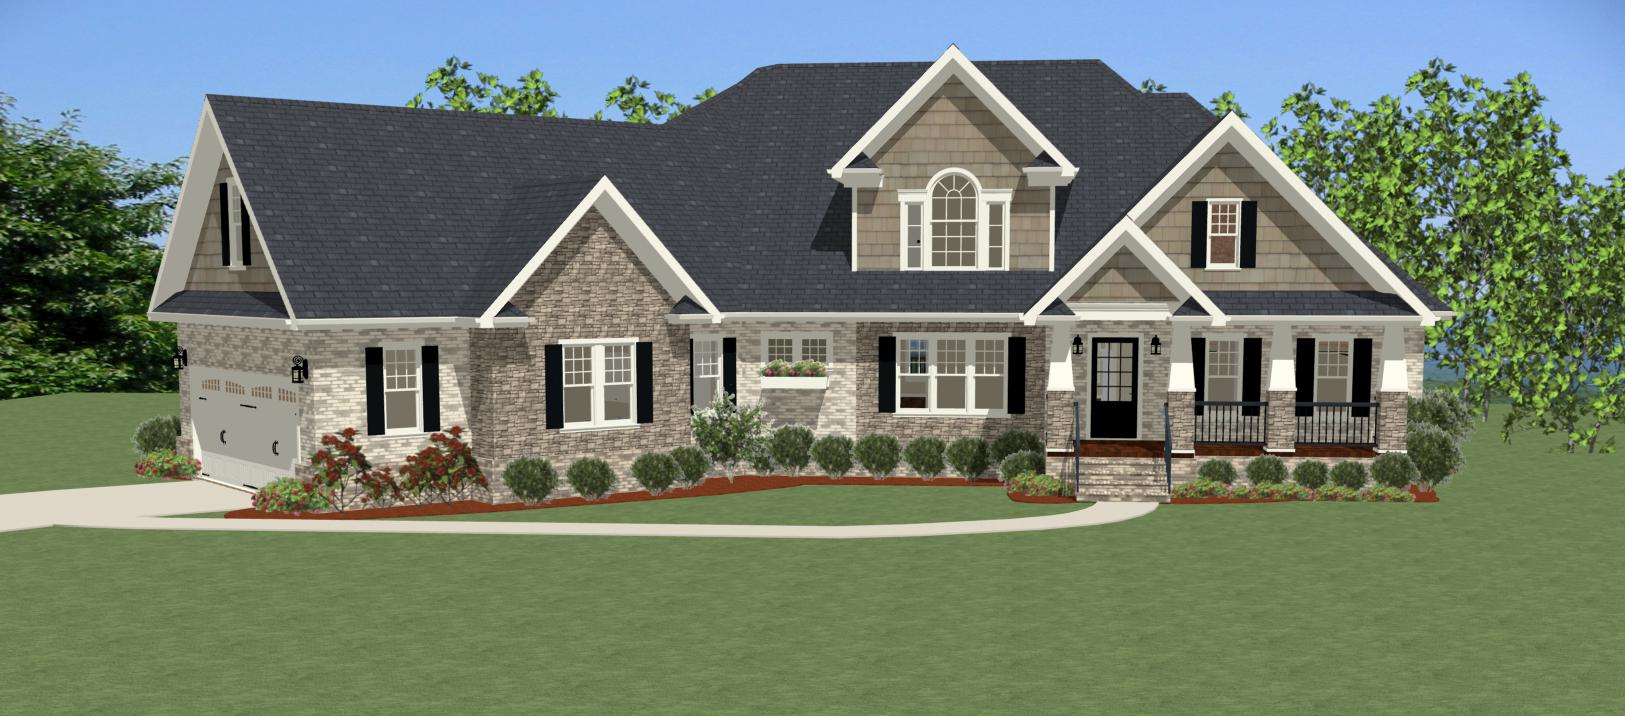 We Have A Winner Introducing The Stoney Creek House Plan